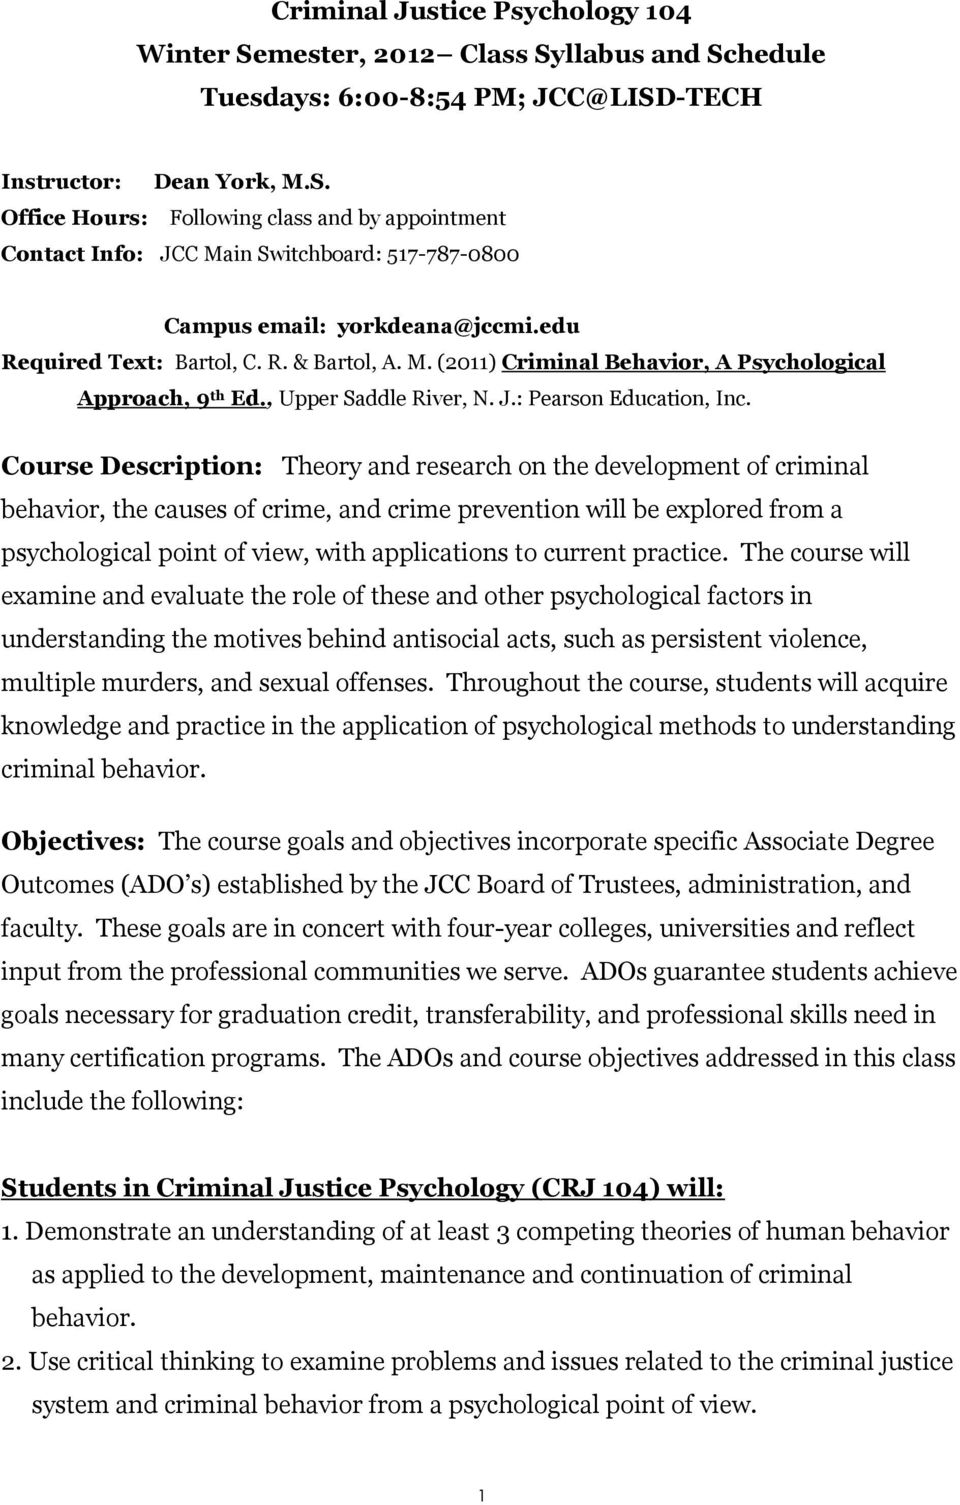 Course Description: Theory and research on the development of criminal behavior, the causes of crime, and crime prevention will be explored from a psychological point of view, with applications to